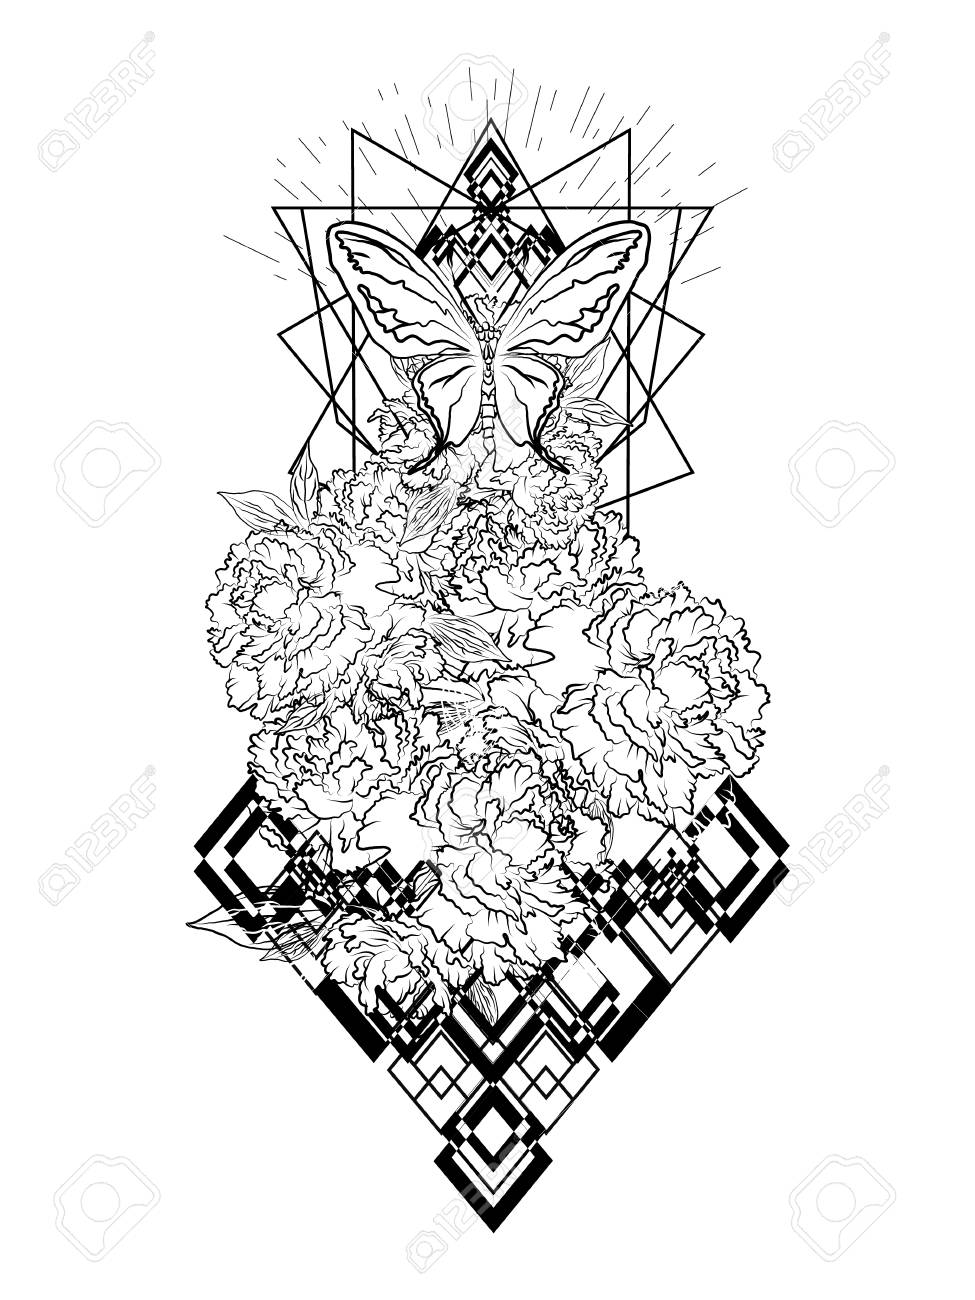 Boho Print Bouquet With Peony Flowers Beautiful Black And White Royalty Free Cliparts Vectors And Stock Illustration Image 109707426